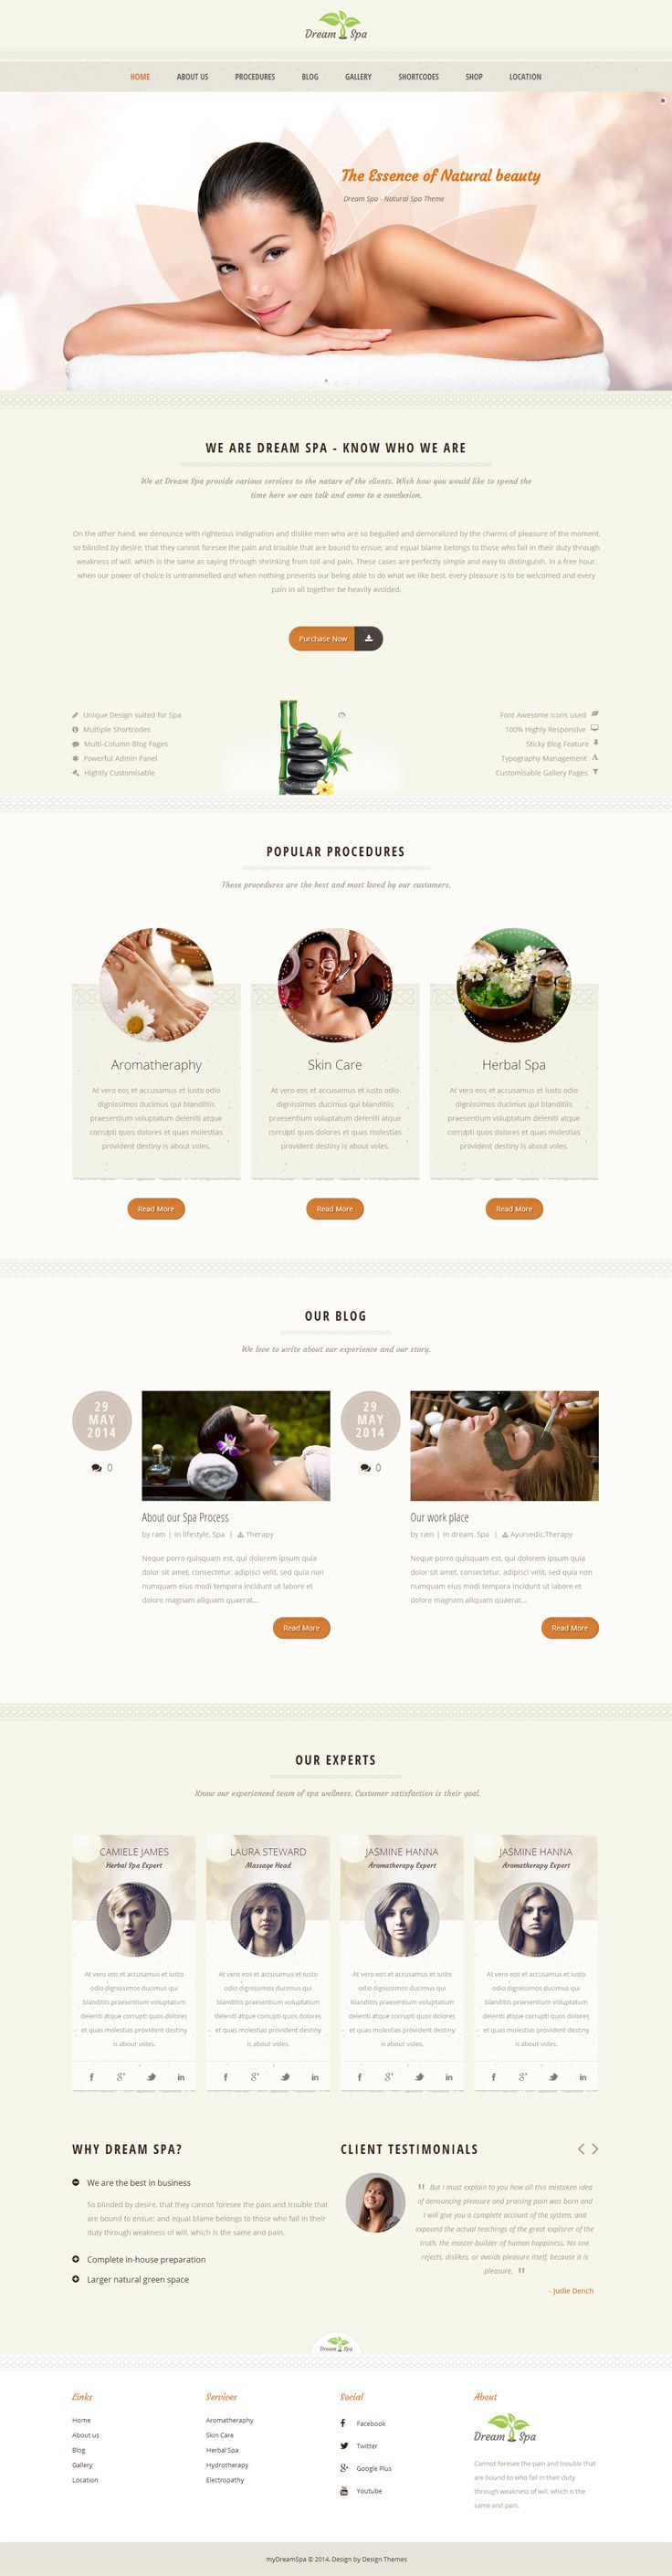 Rejuvenating Beauty Salon and Wellness Treatments WordPress theme with tons of potential features for Spa Business.Whether you create a fresh website for your salon or need a feel good refreshing style for your existing web presence, Dream Spa will be the best choice.